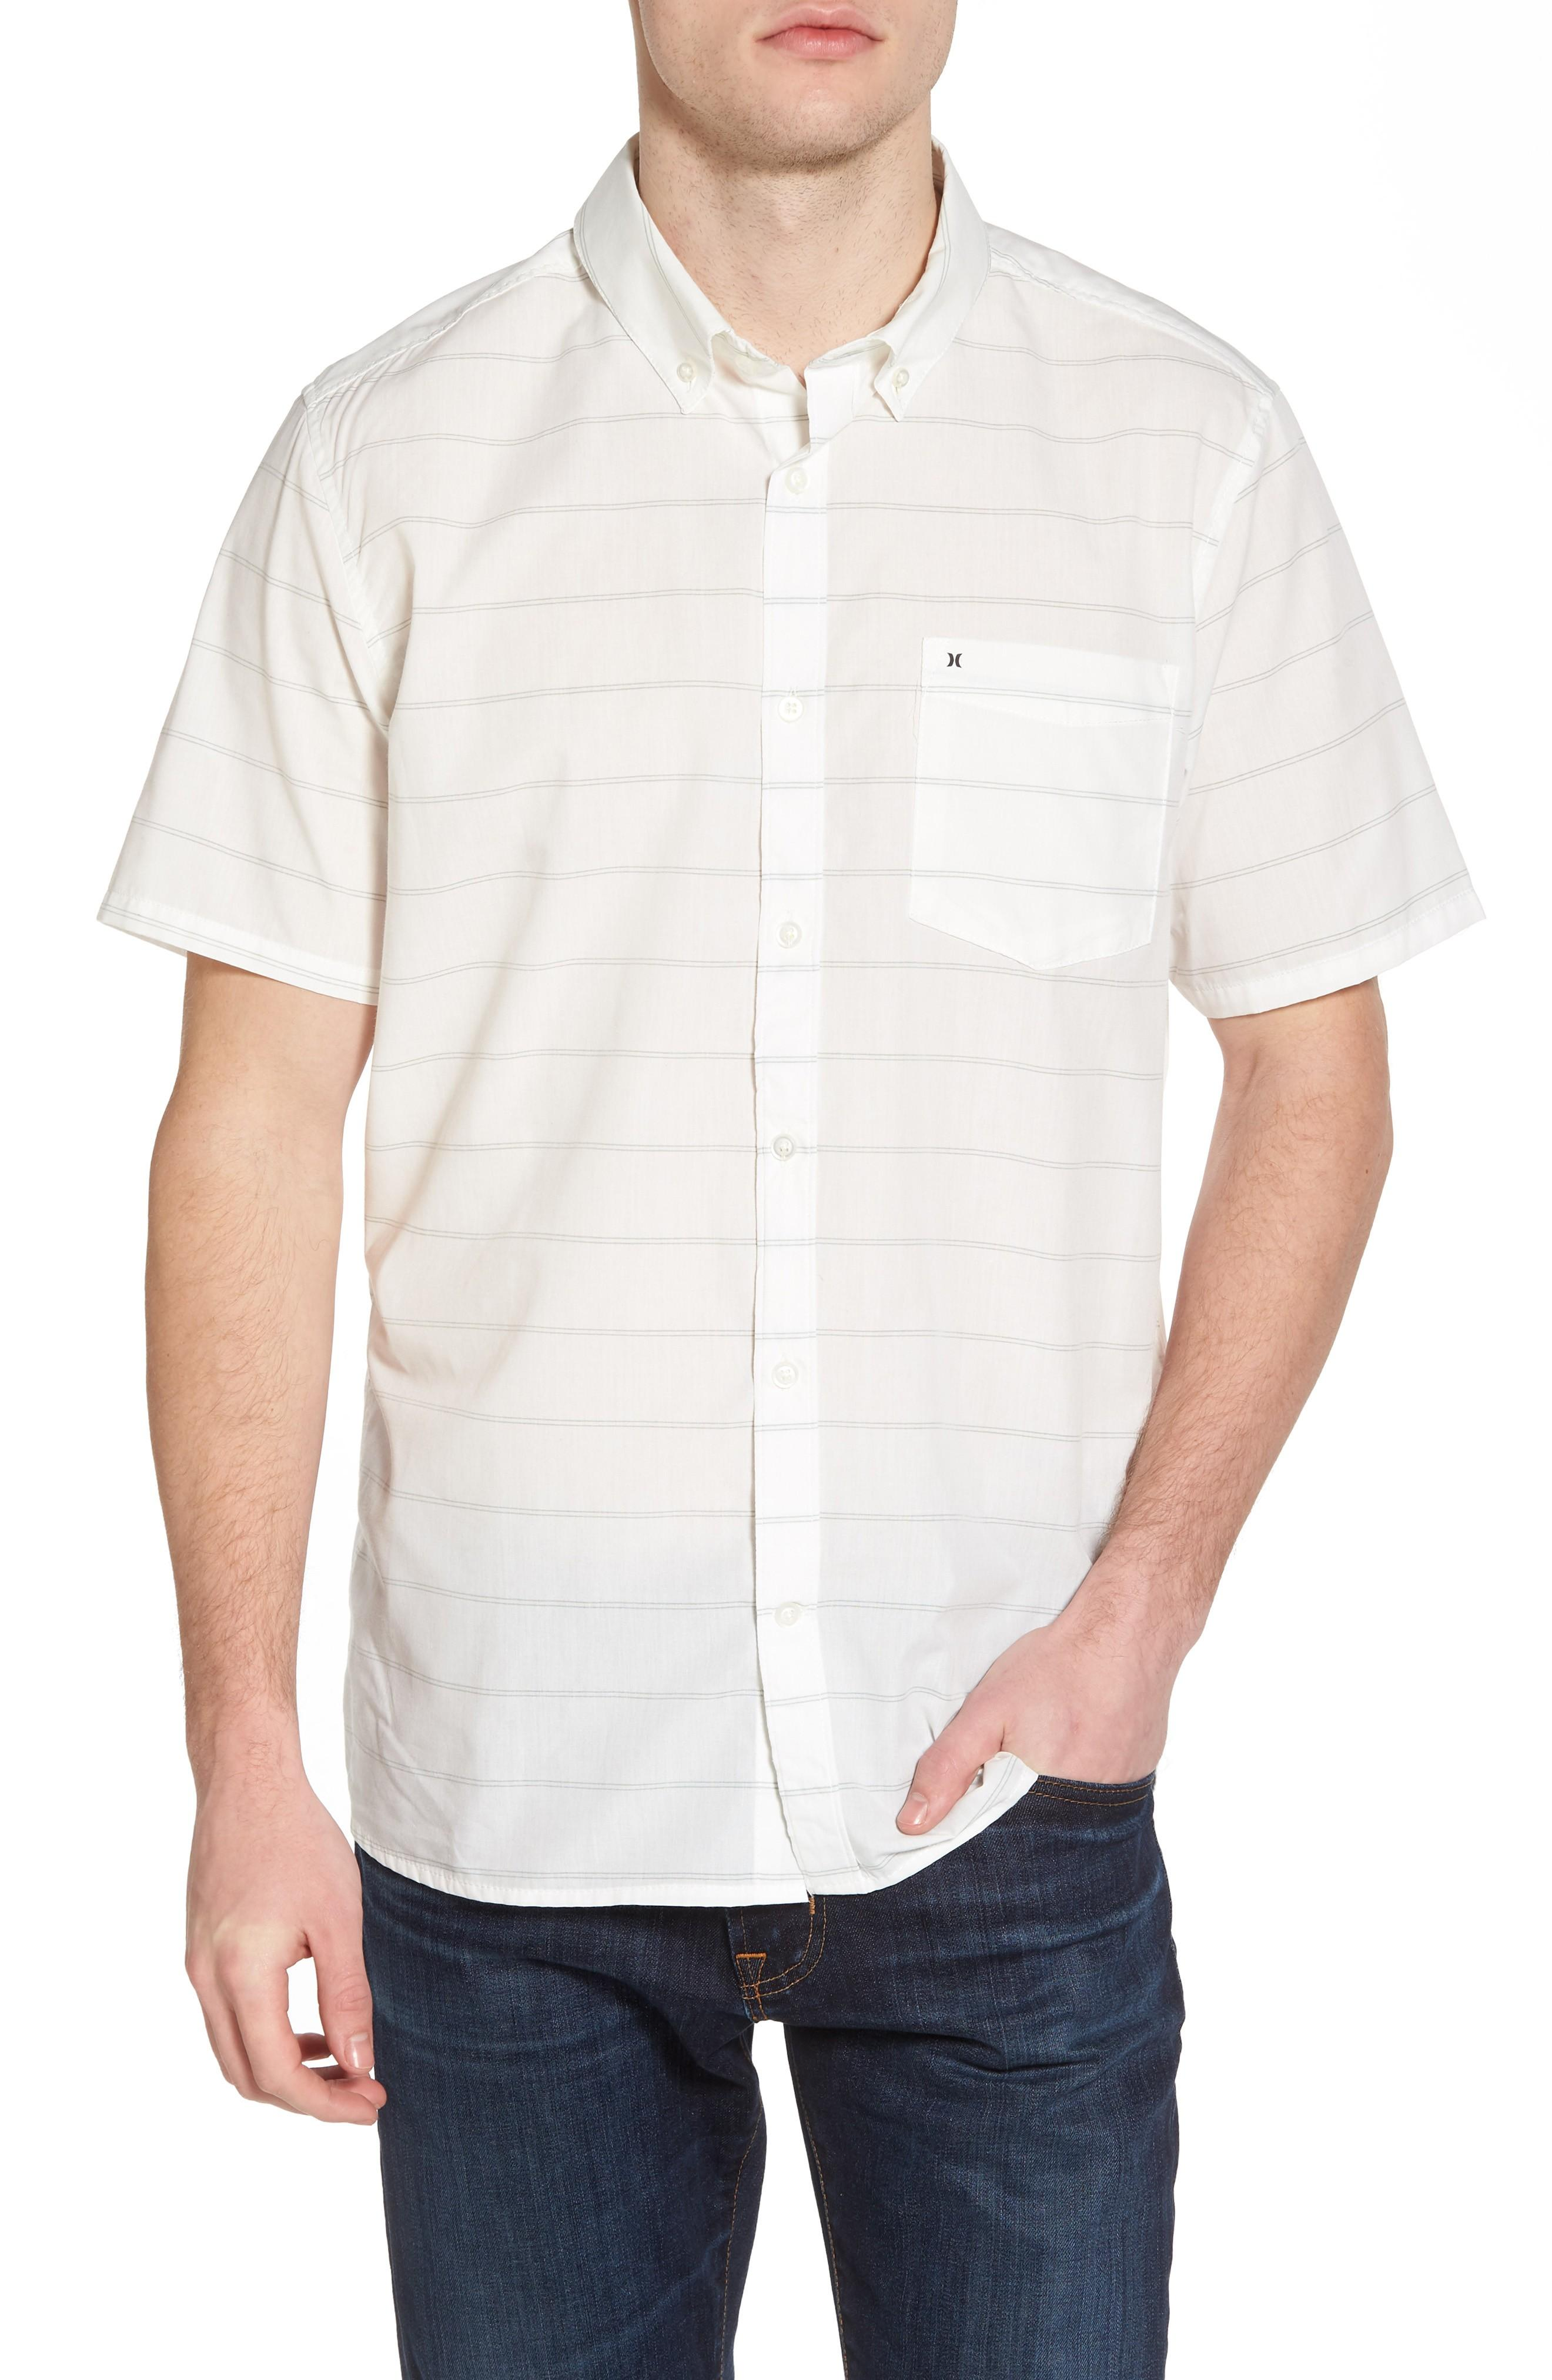 Hurley Reeder Dry Woven Shirt In Sail